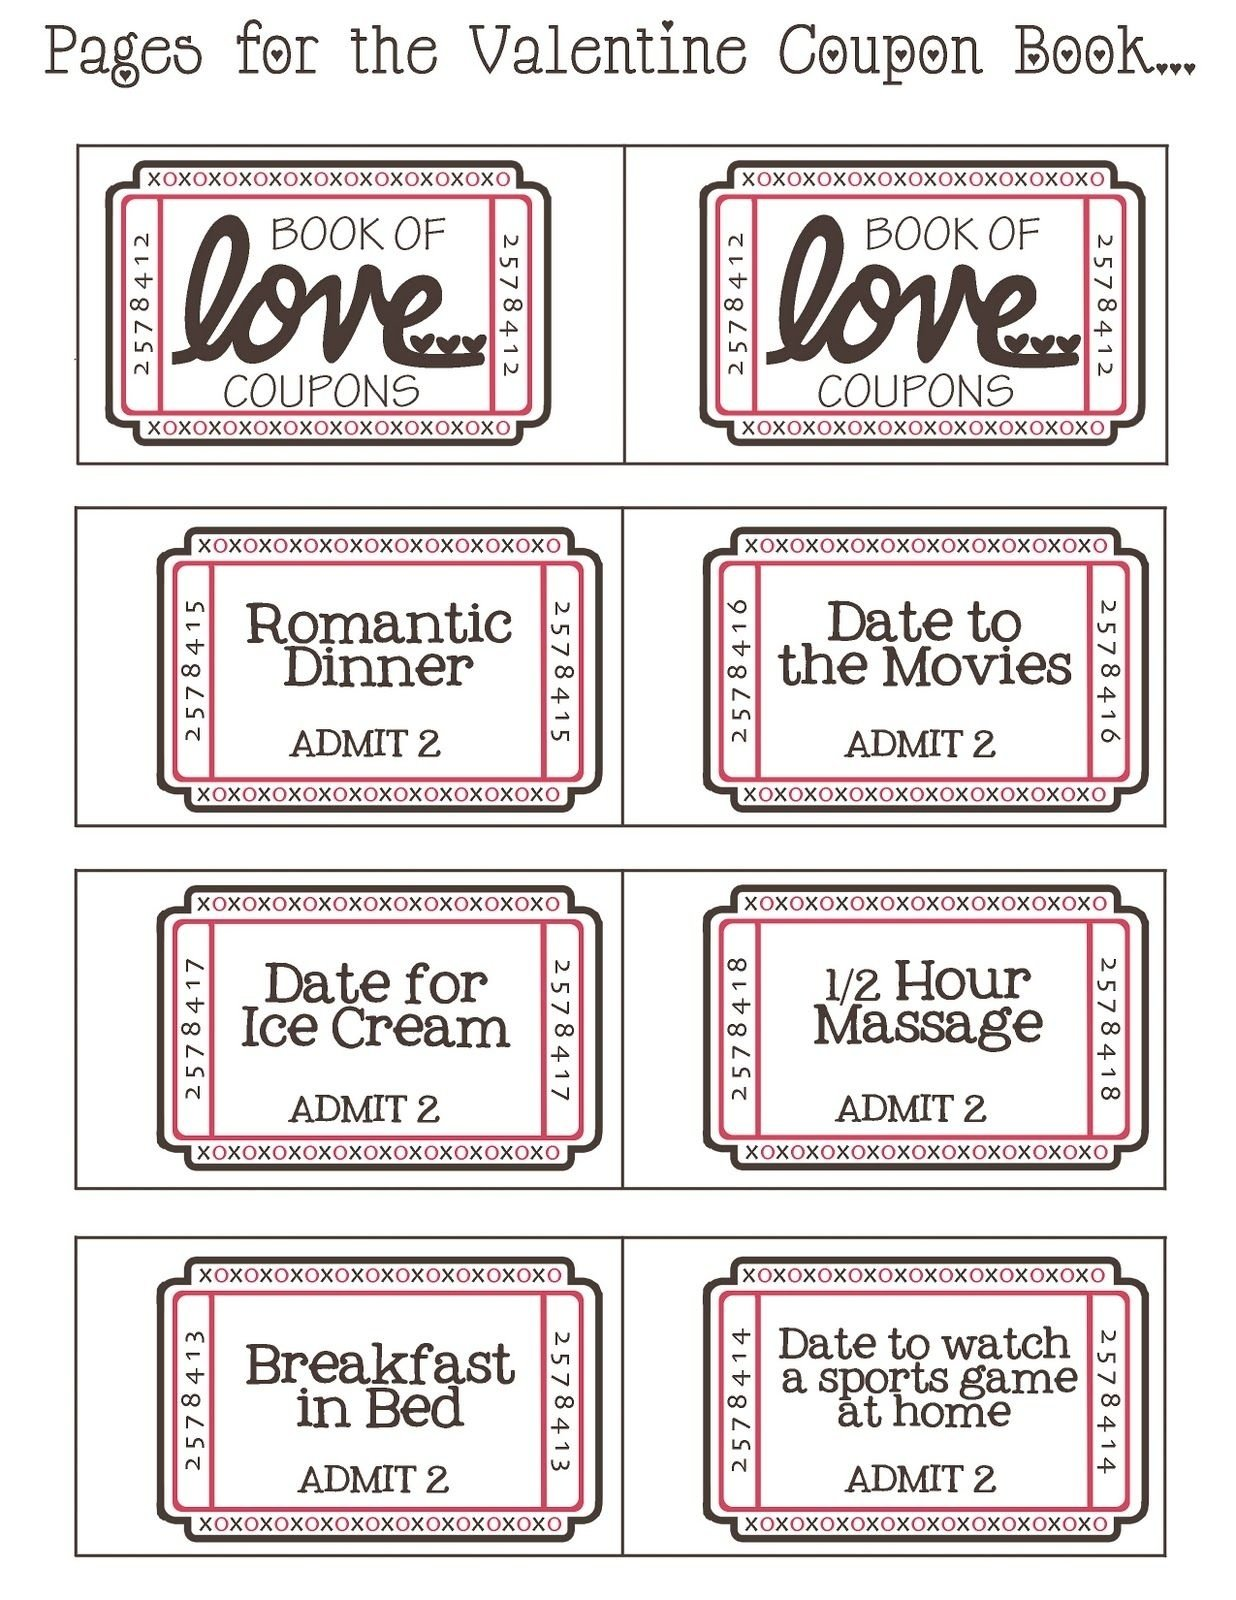 10 Most Recommended Cute Coupon Book Ideas For Boyfriend mommyday crafternight free printable valentine coupon 2020